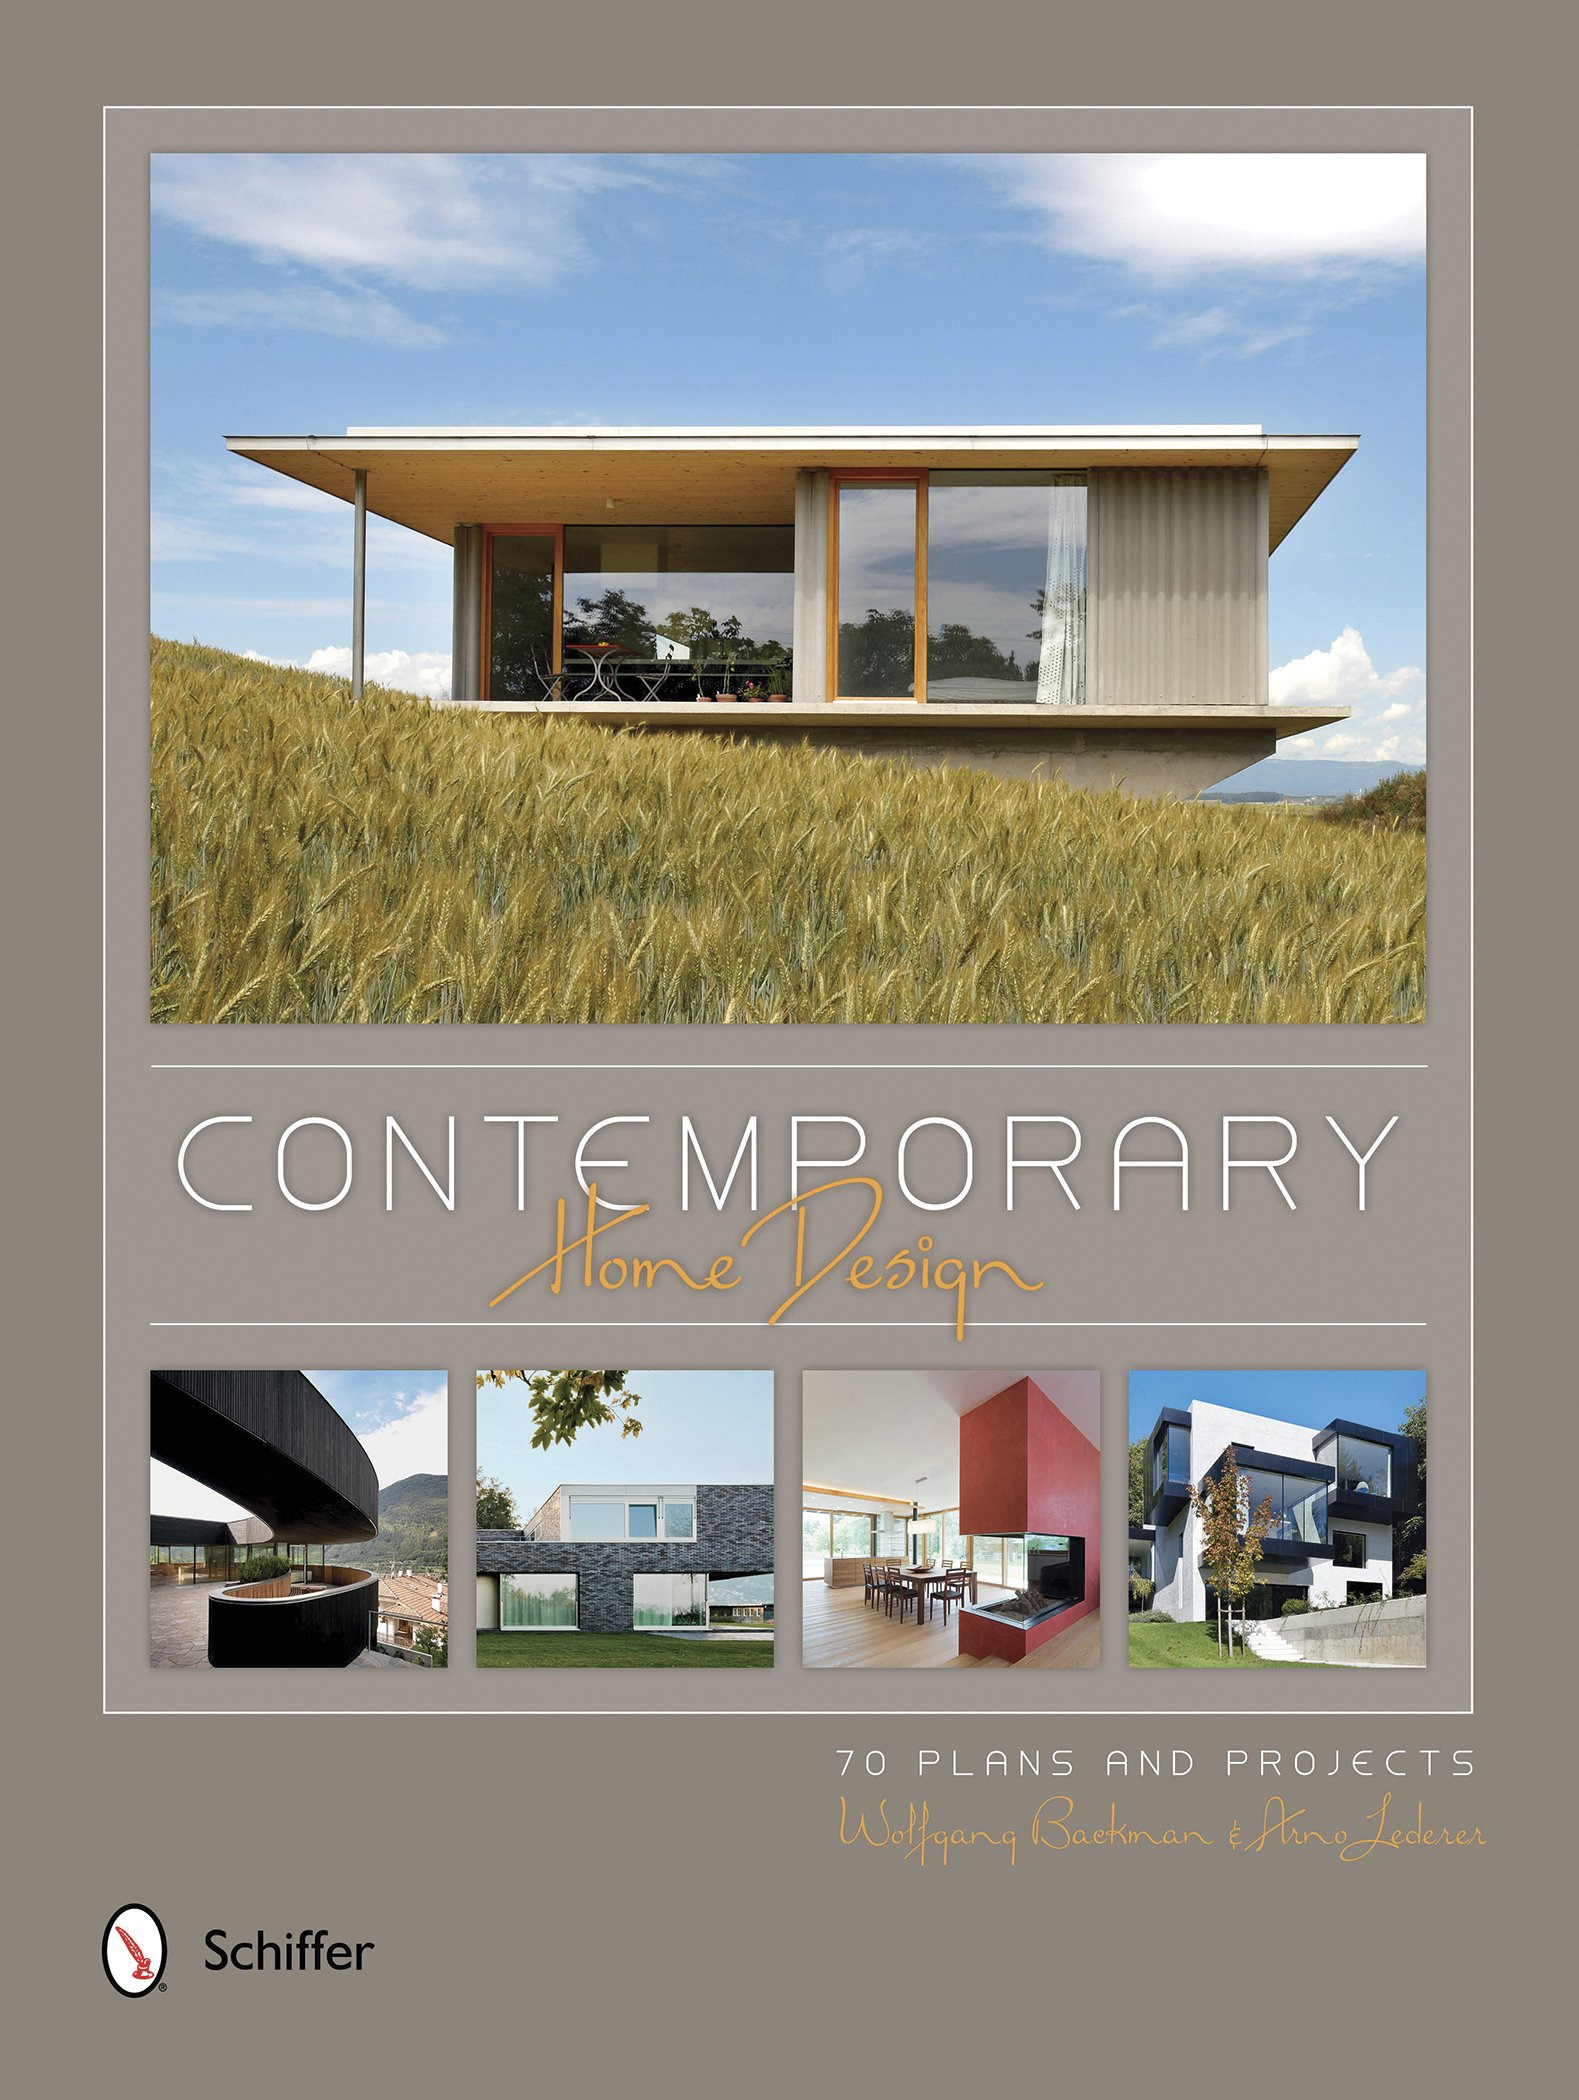 Modern Architecture Home Design Inspirational Contemporary Home Design 70 Plans and Projects Bachmann